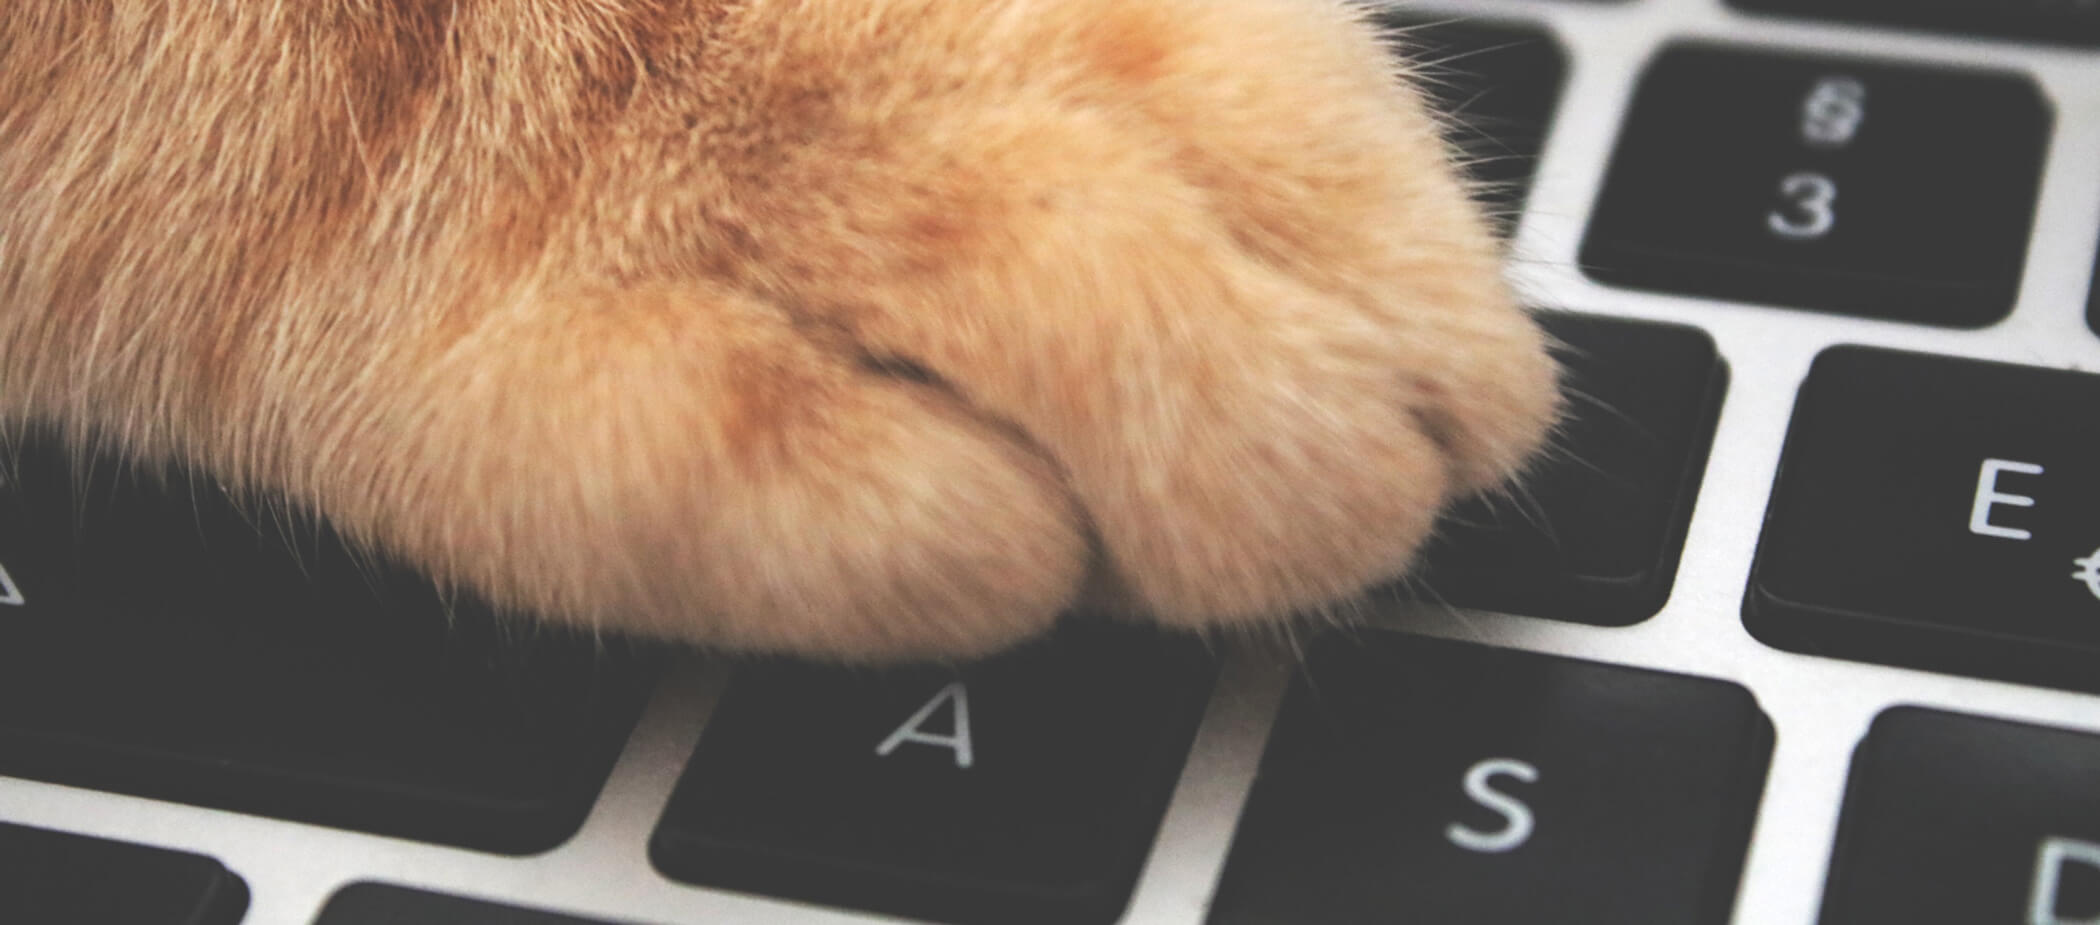 cat-keyboard